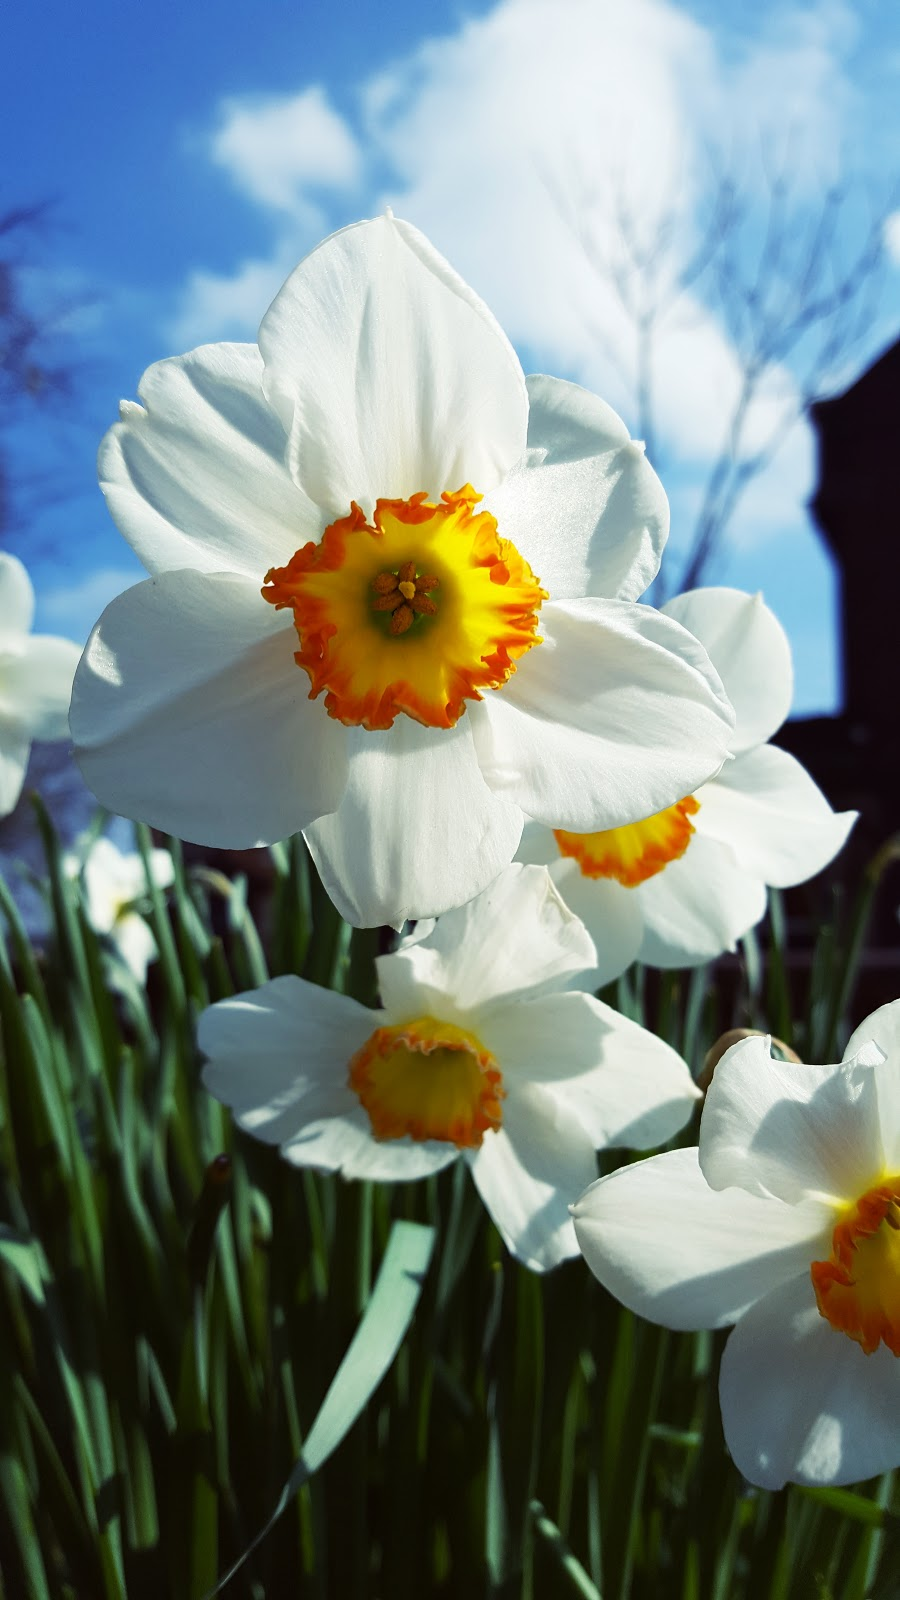 Blue skies And Daffodils: Spring In Chesterfield